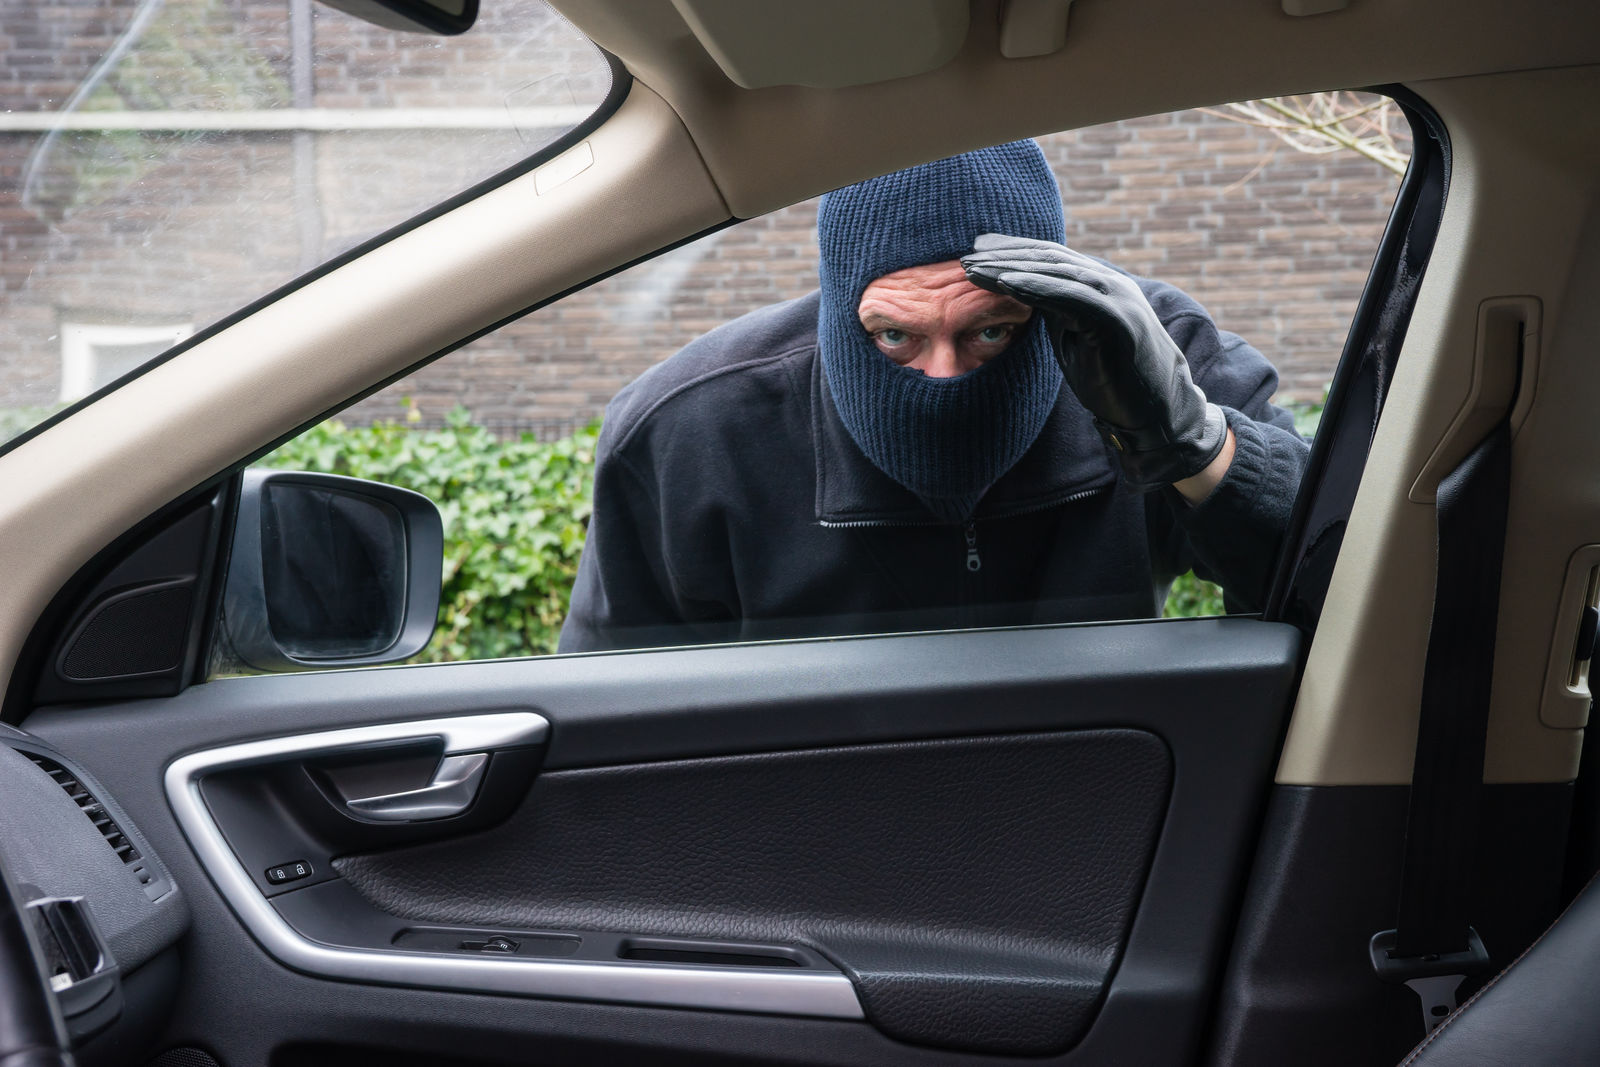 Does my car insurance cover stolen property?